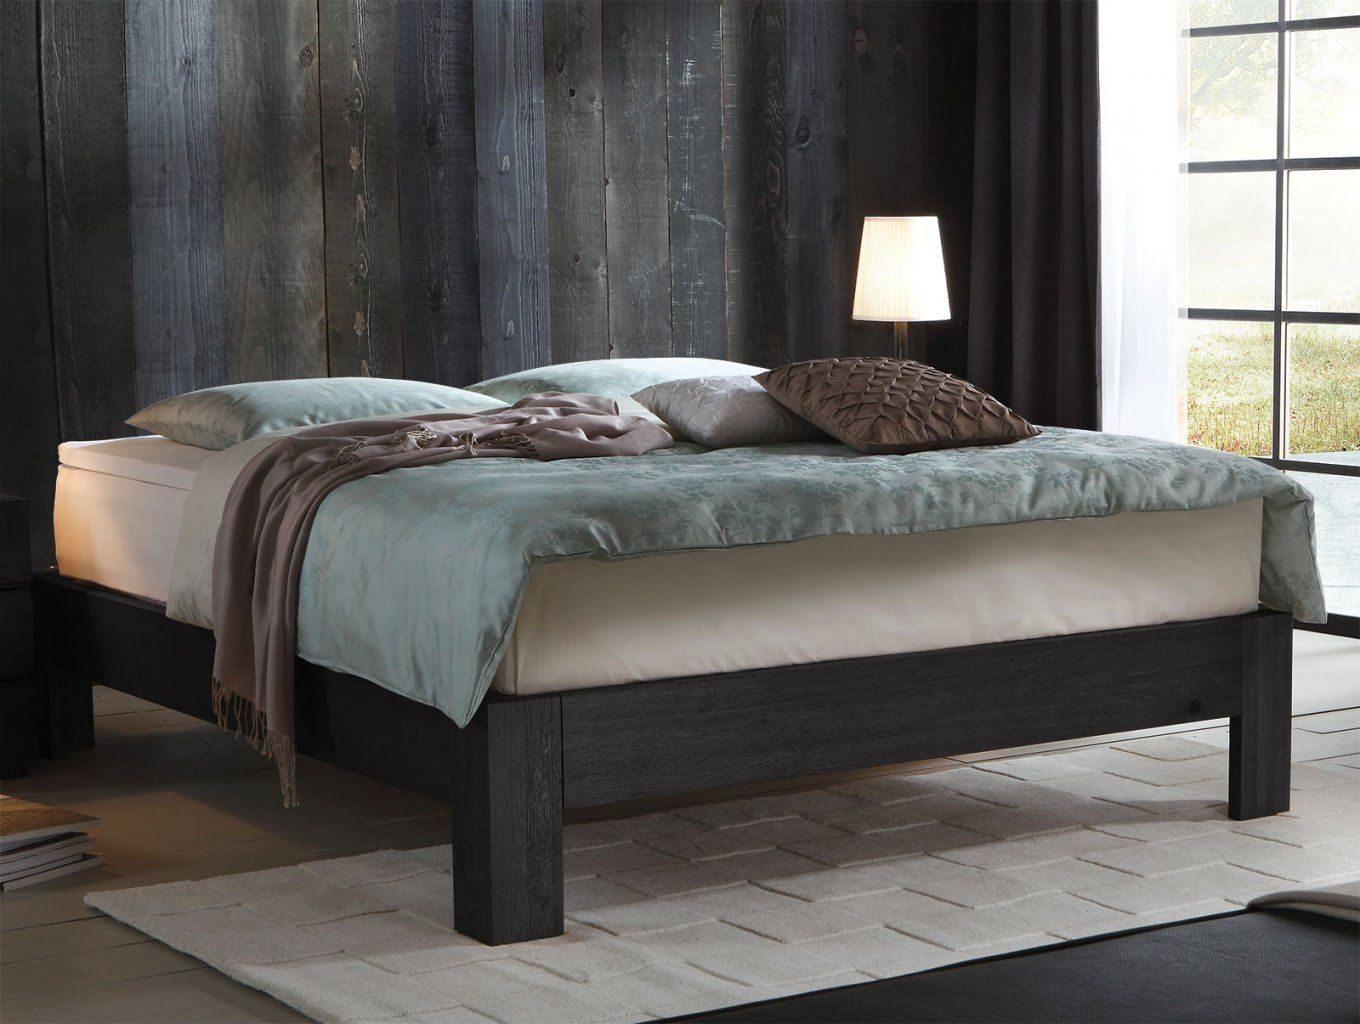 boxspringbett mit bettkasten boxspringbett damaso in grau. Black Bedroom Furniture Sets. Home Design Ideas